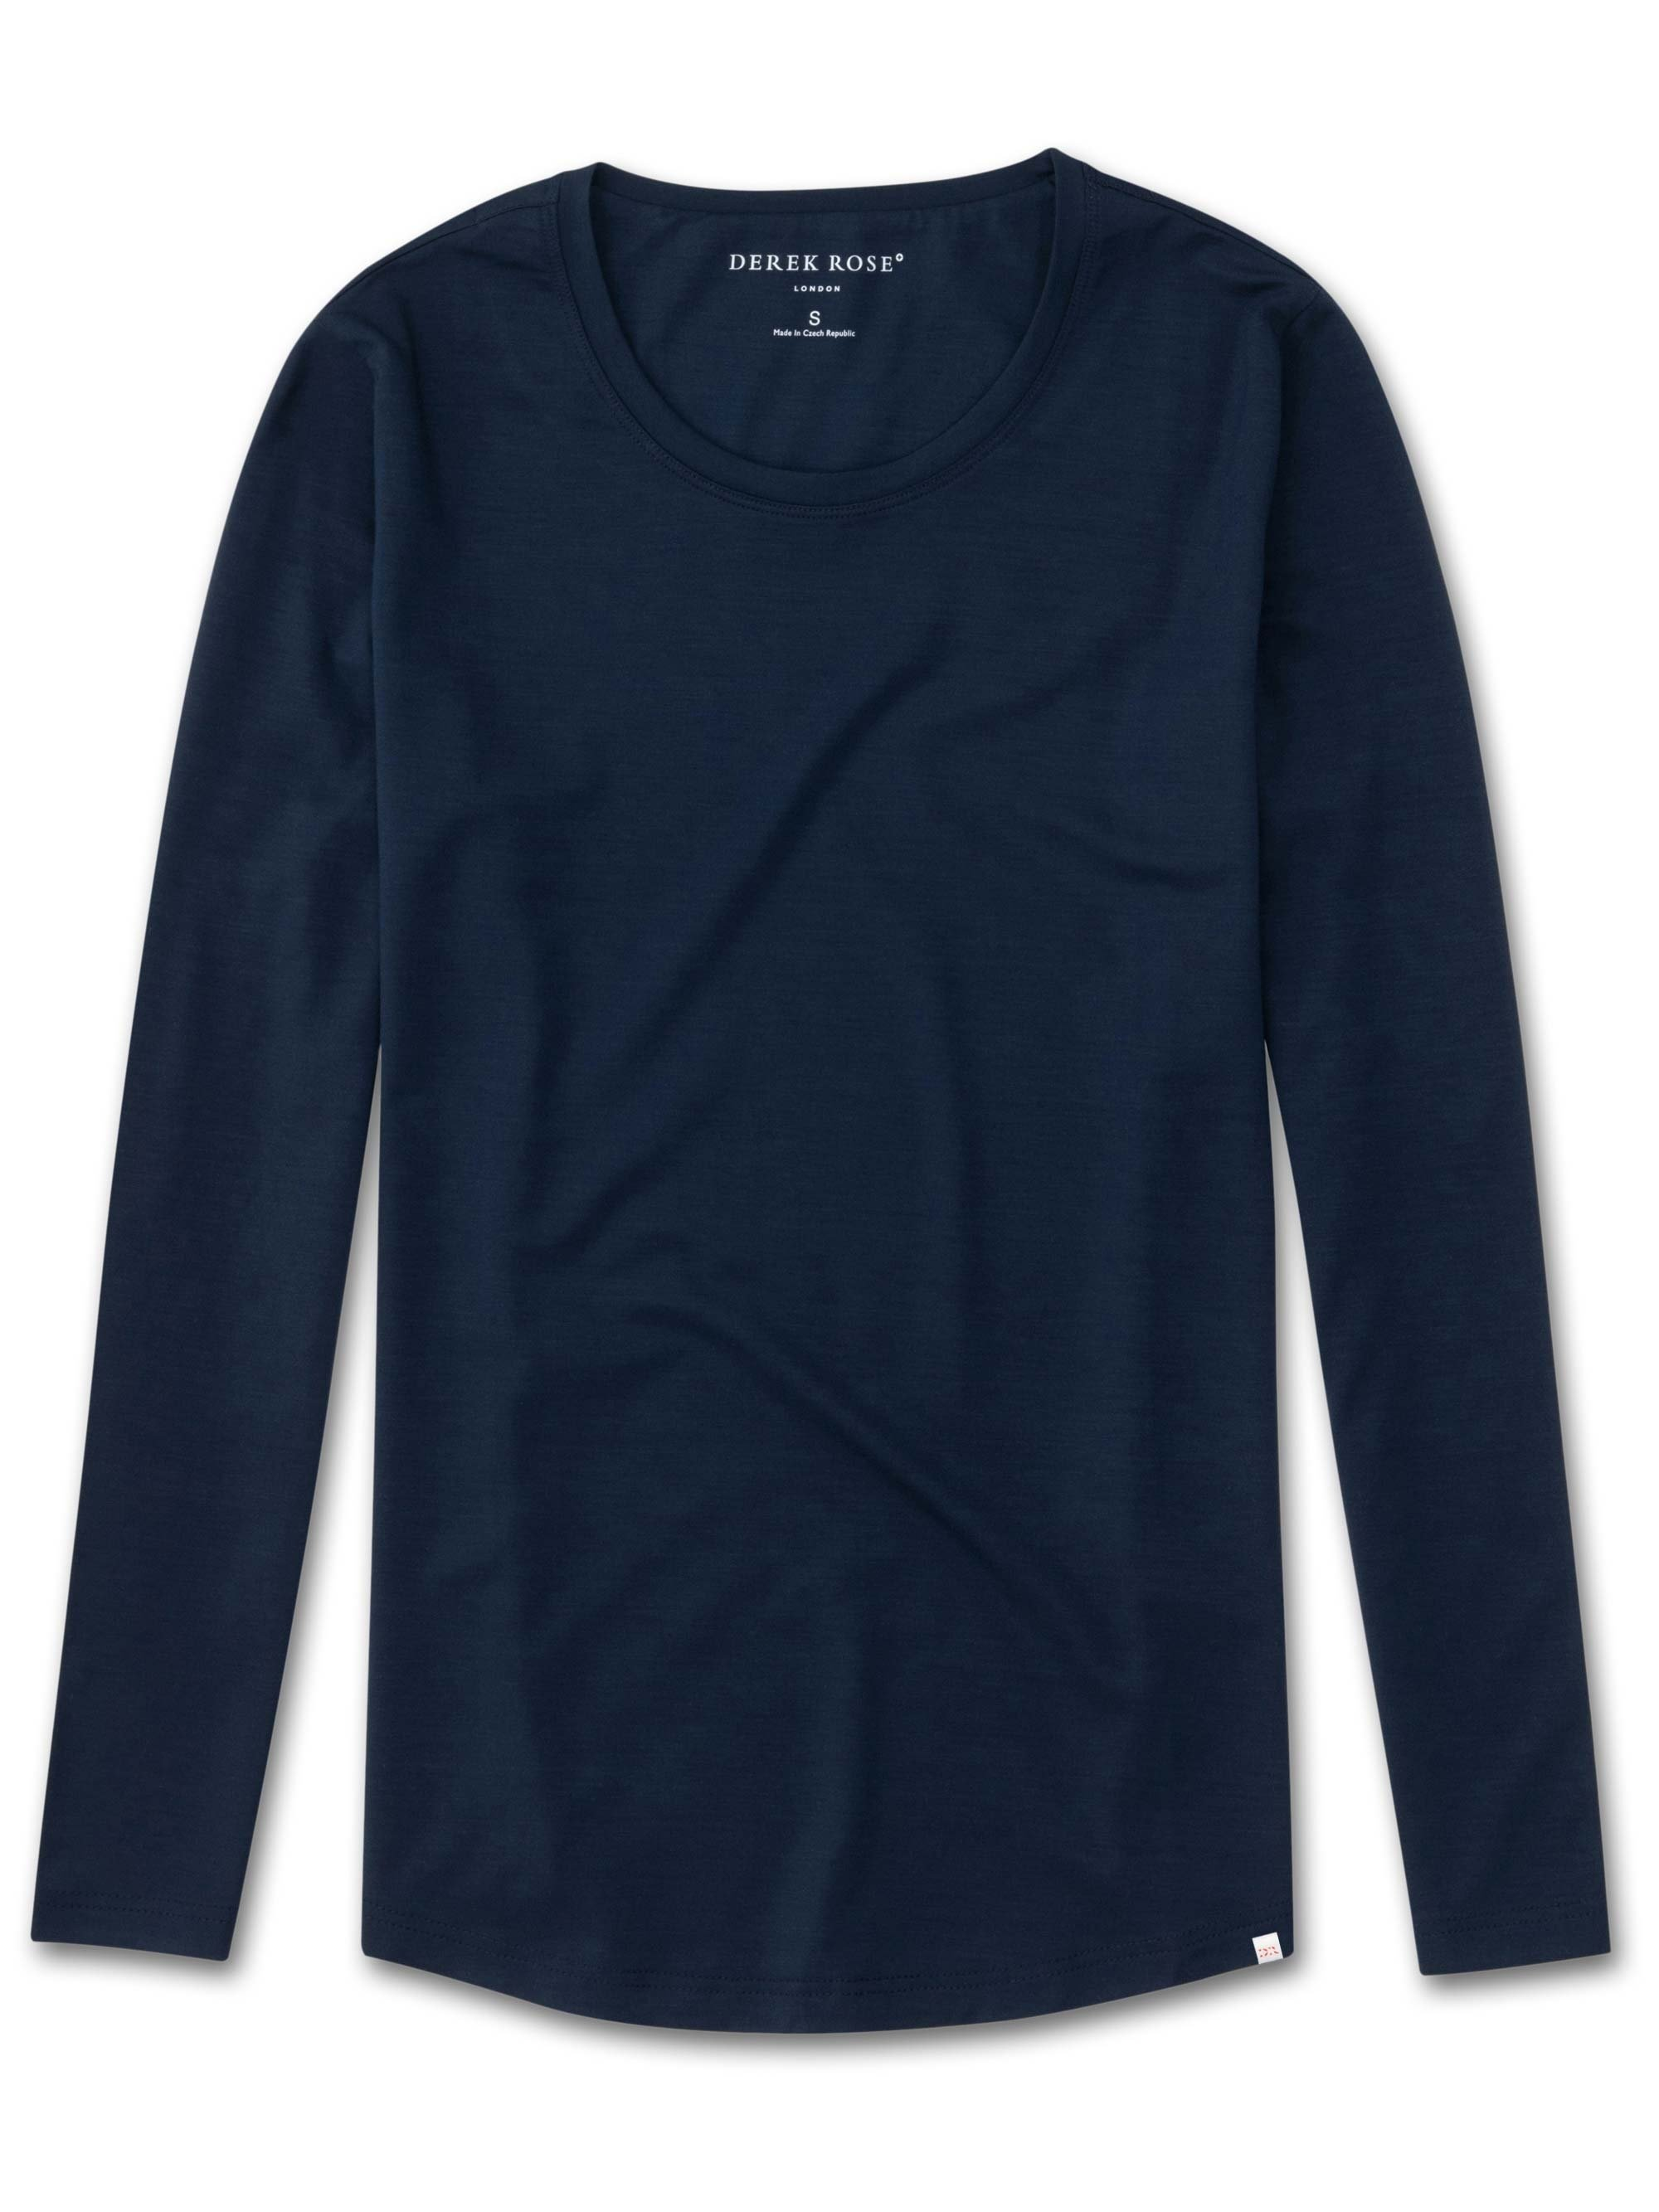 Women's Long Sleeve T-Shirt Lara Micro Modal Stretch Navy